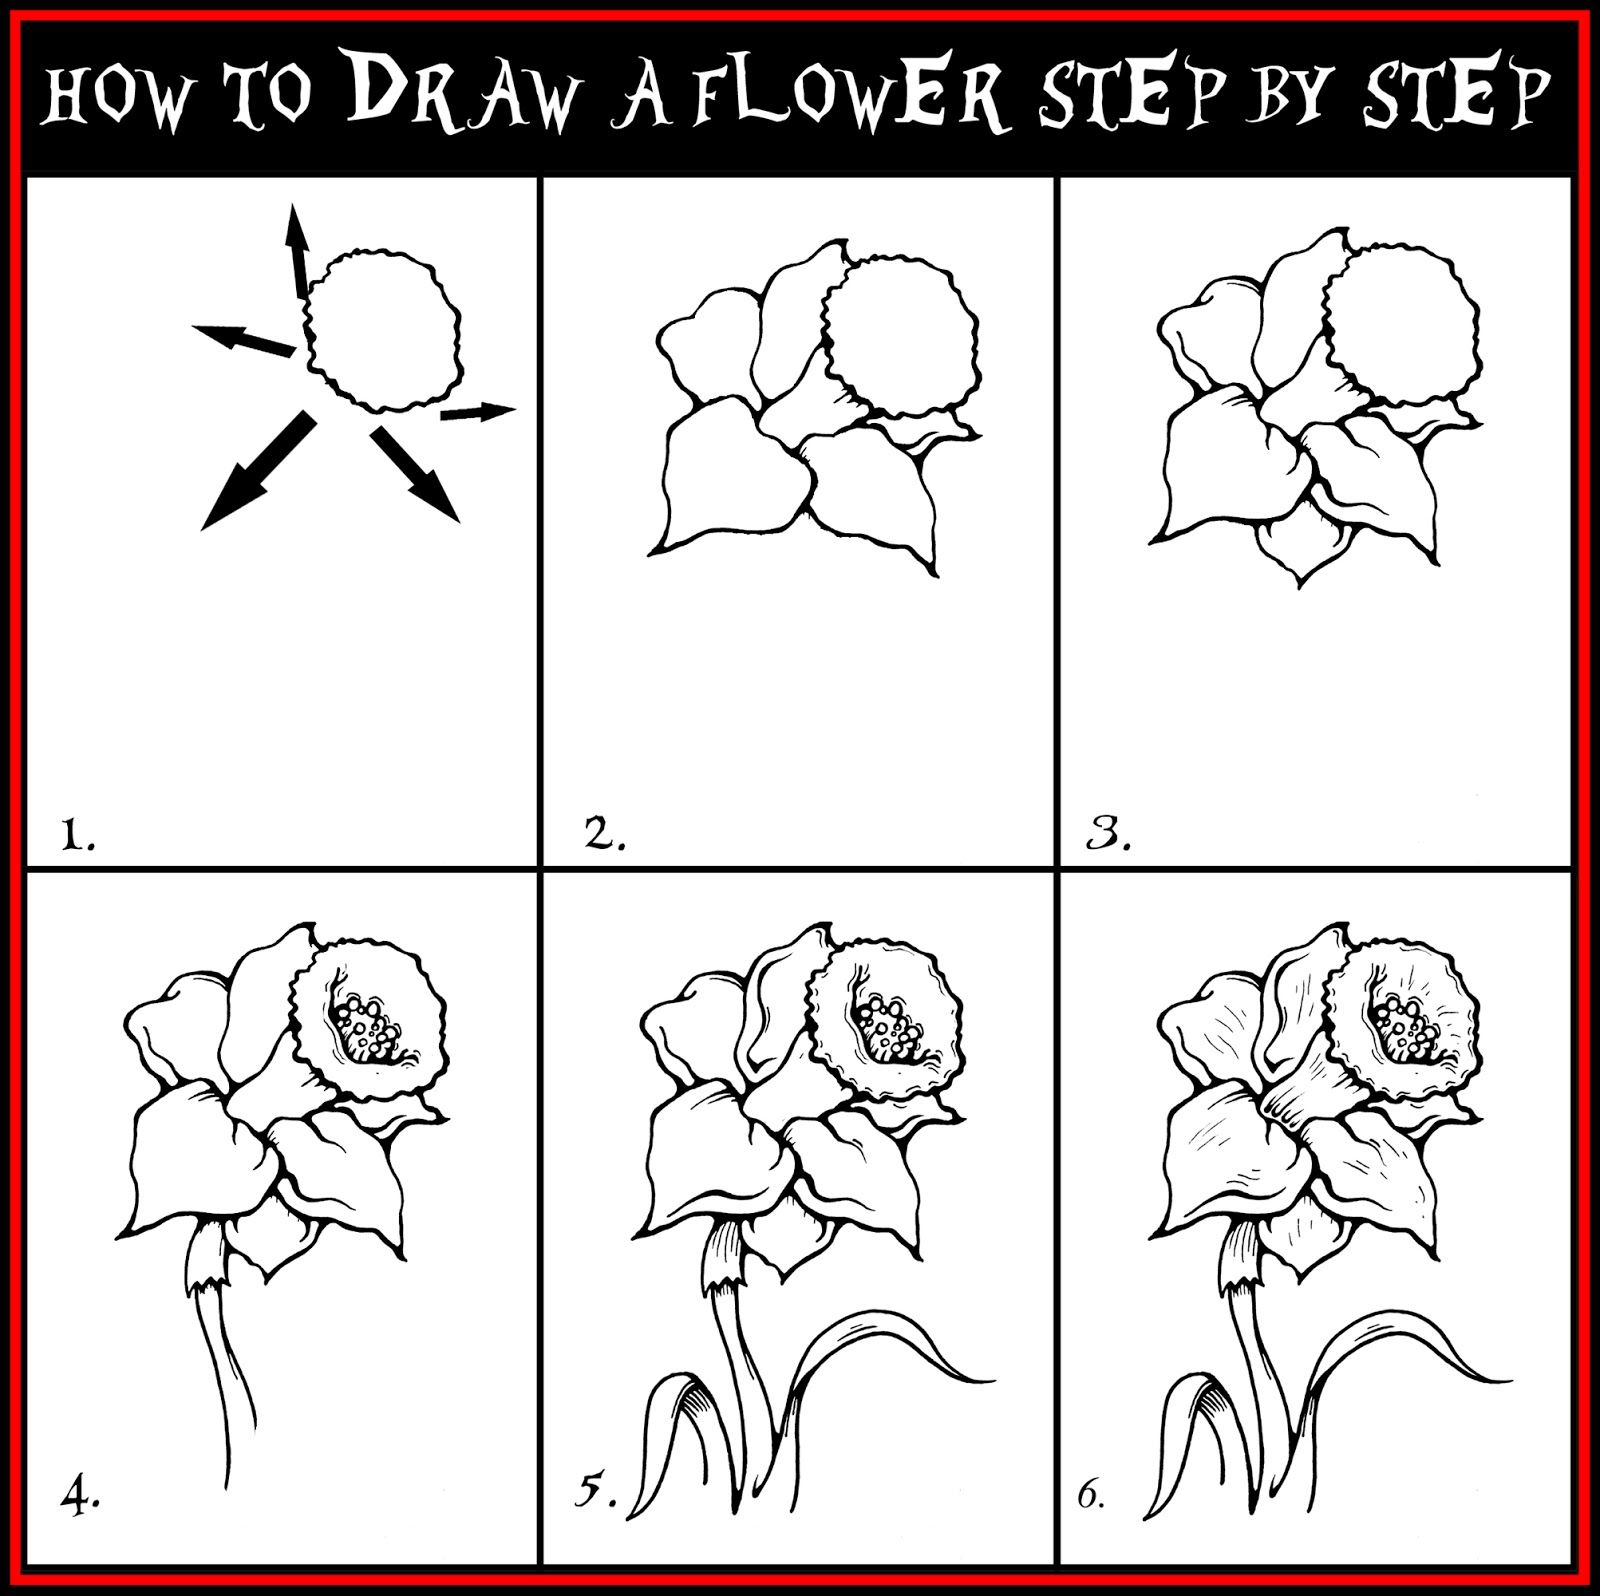 How to draw realistic flowers daryl hobson artwork how to draw a flower step by step drawing guide